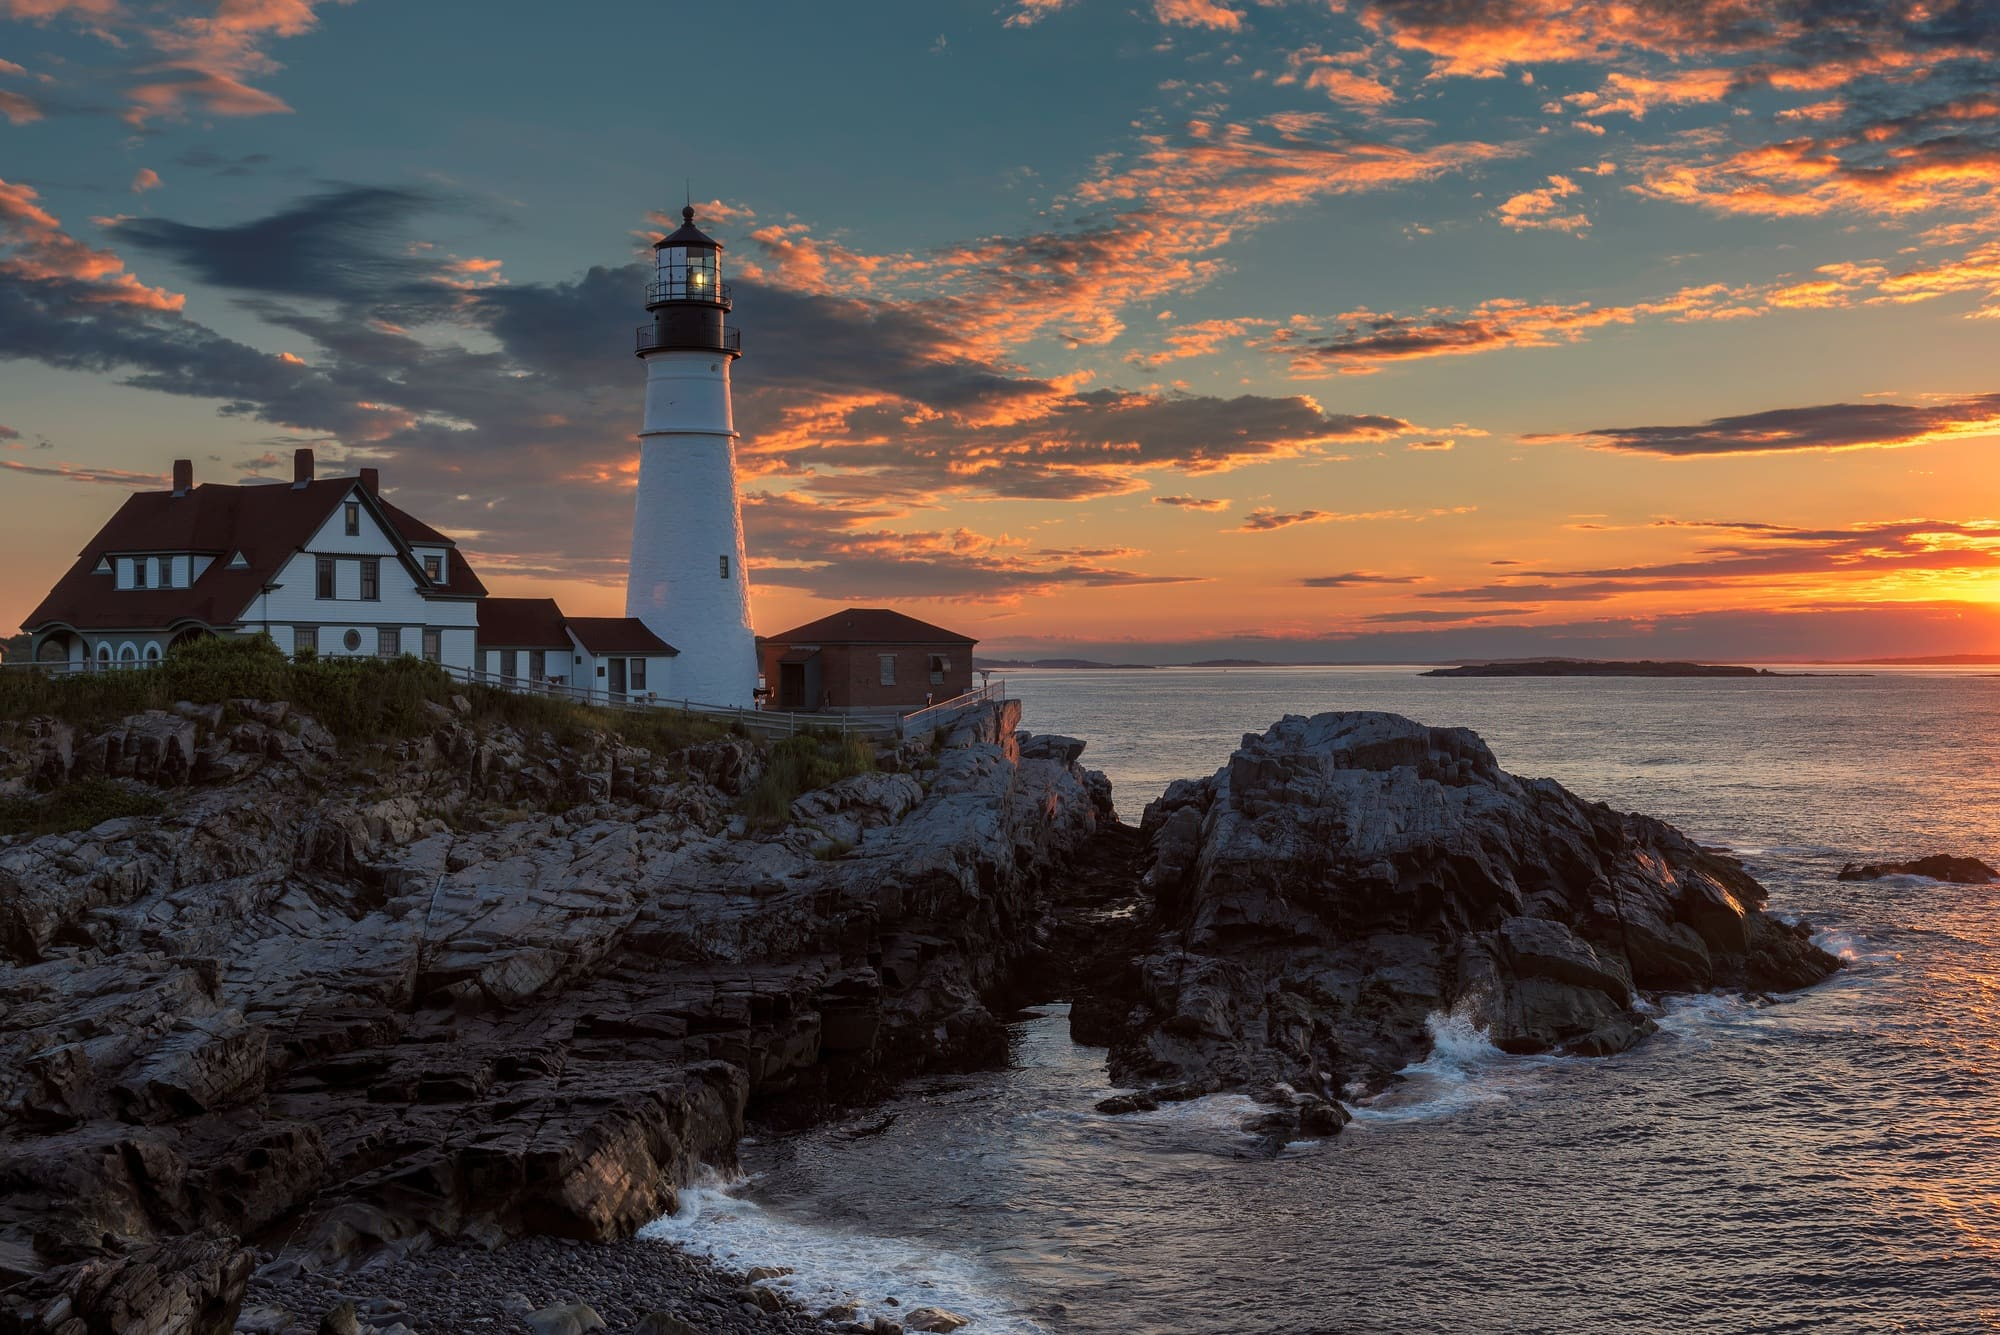 Plan an adventurous trip to Portland, Maine! Here are 12 things to do in Portland that will get you outdoors, exploring town & finding the best places to eat/drink.